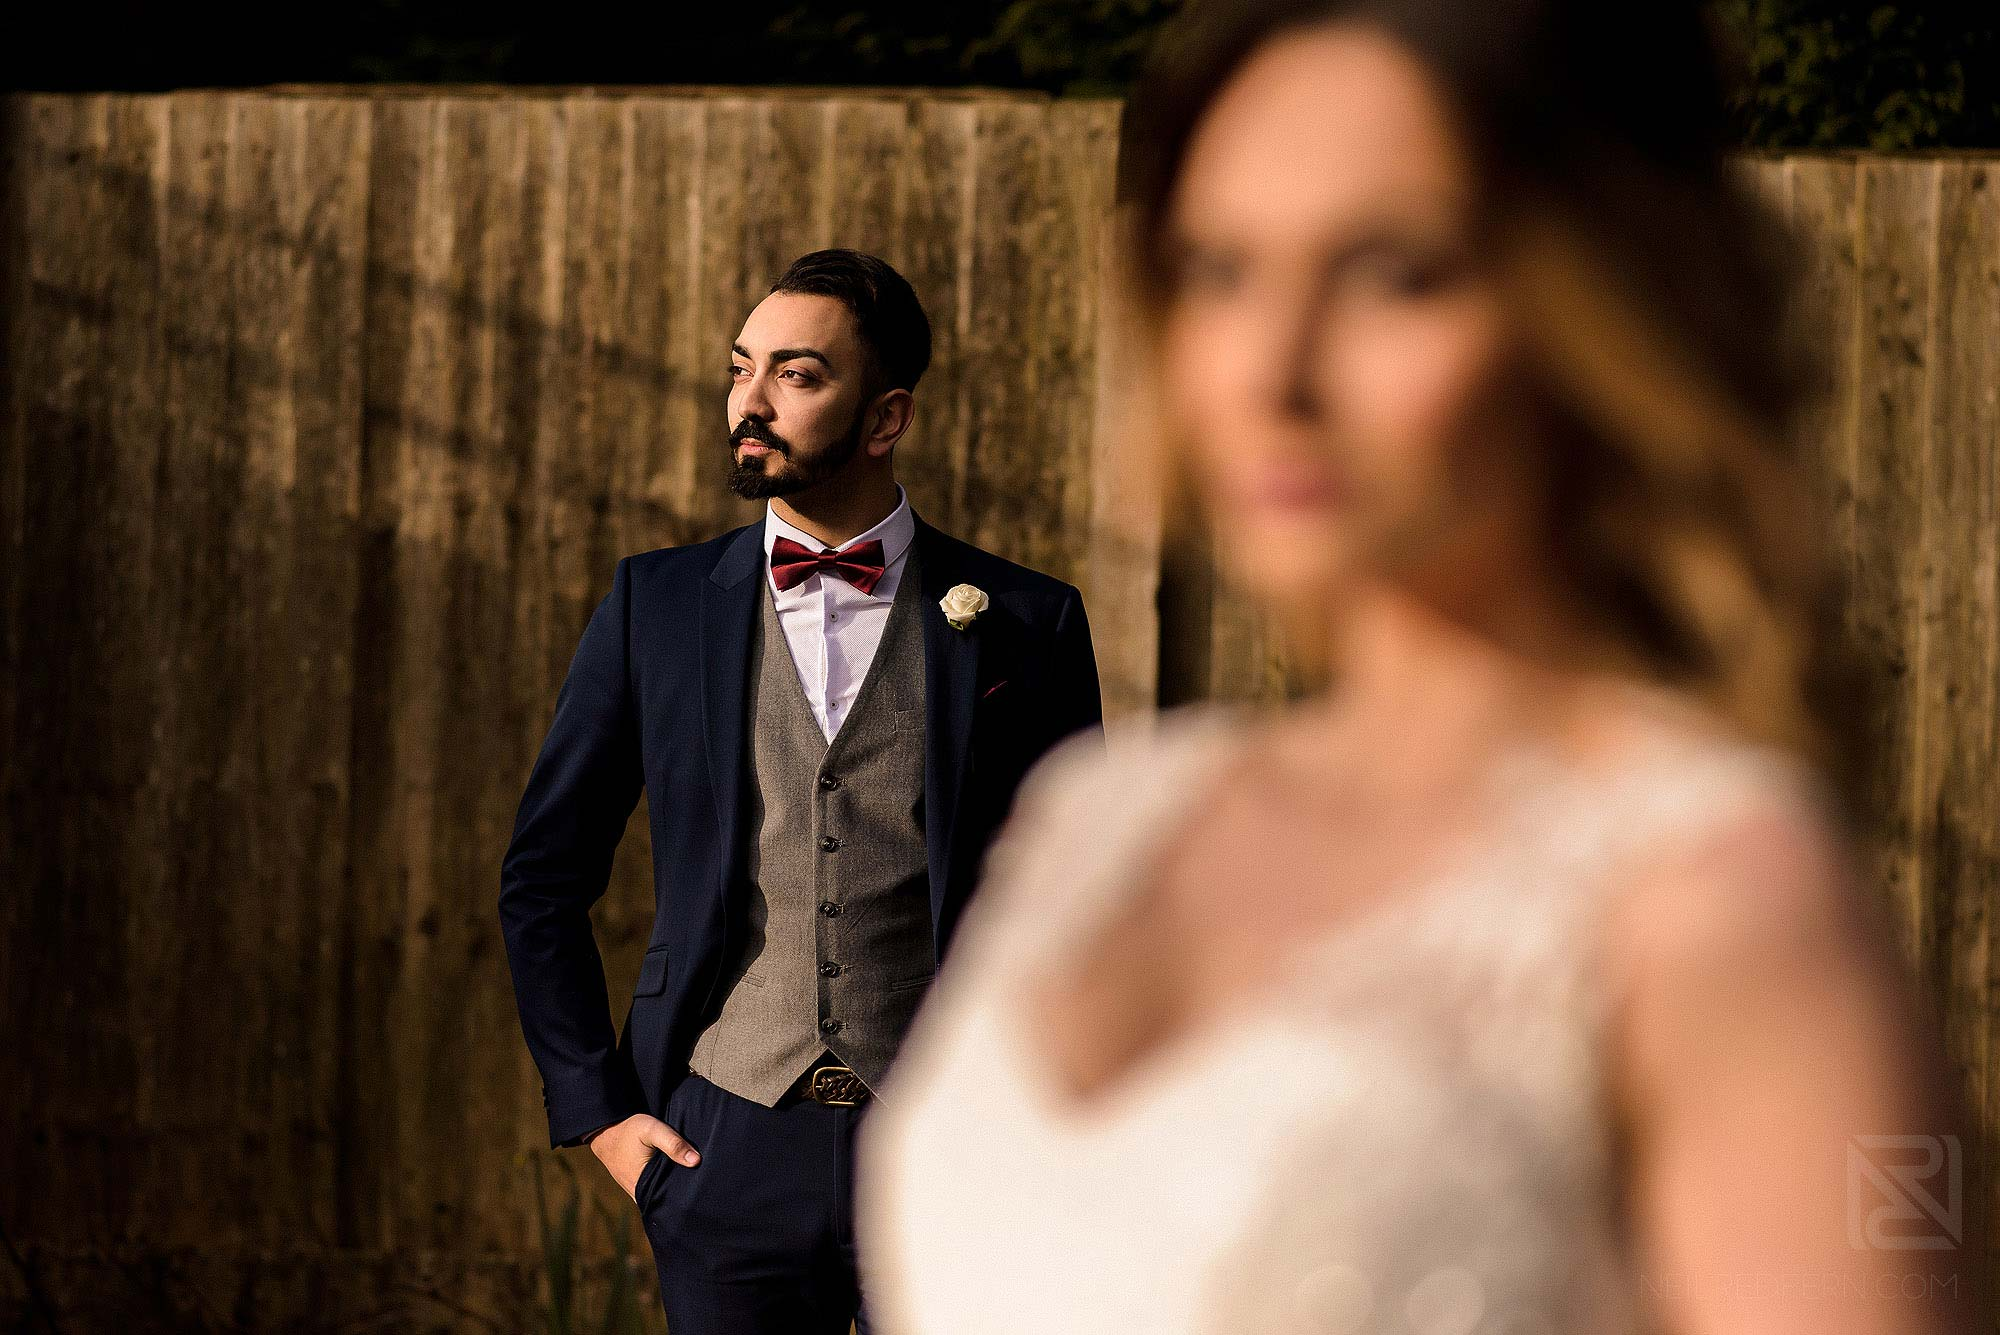 portrait of bride and groom taken on a wedding photography workshop in the North West